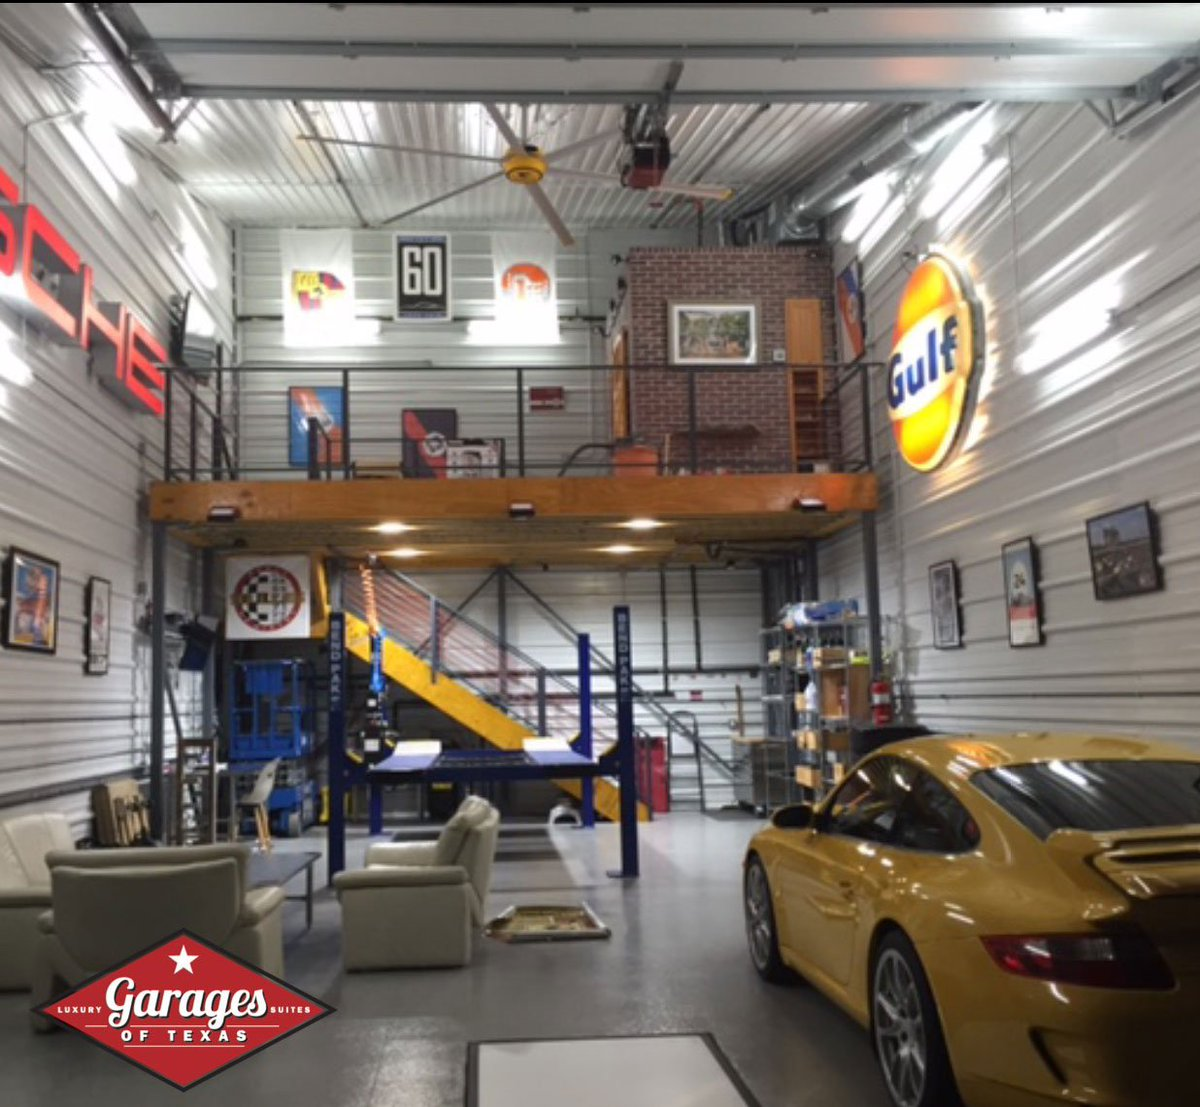 "Condos For Rent With Garage: Garages Of Texas On Twitter: ""Check Out The #mezzanine"